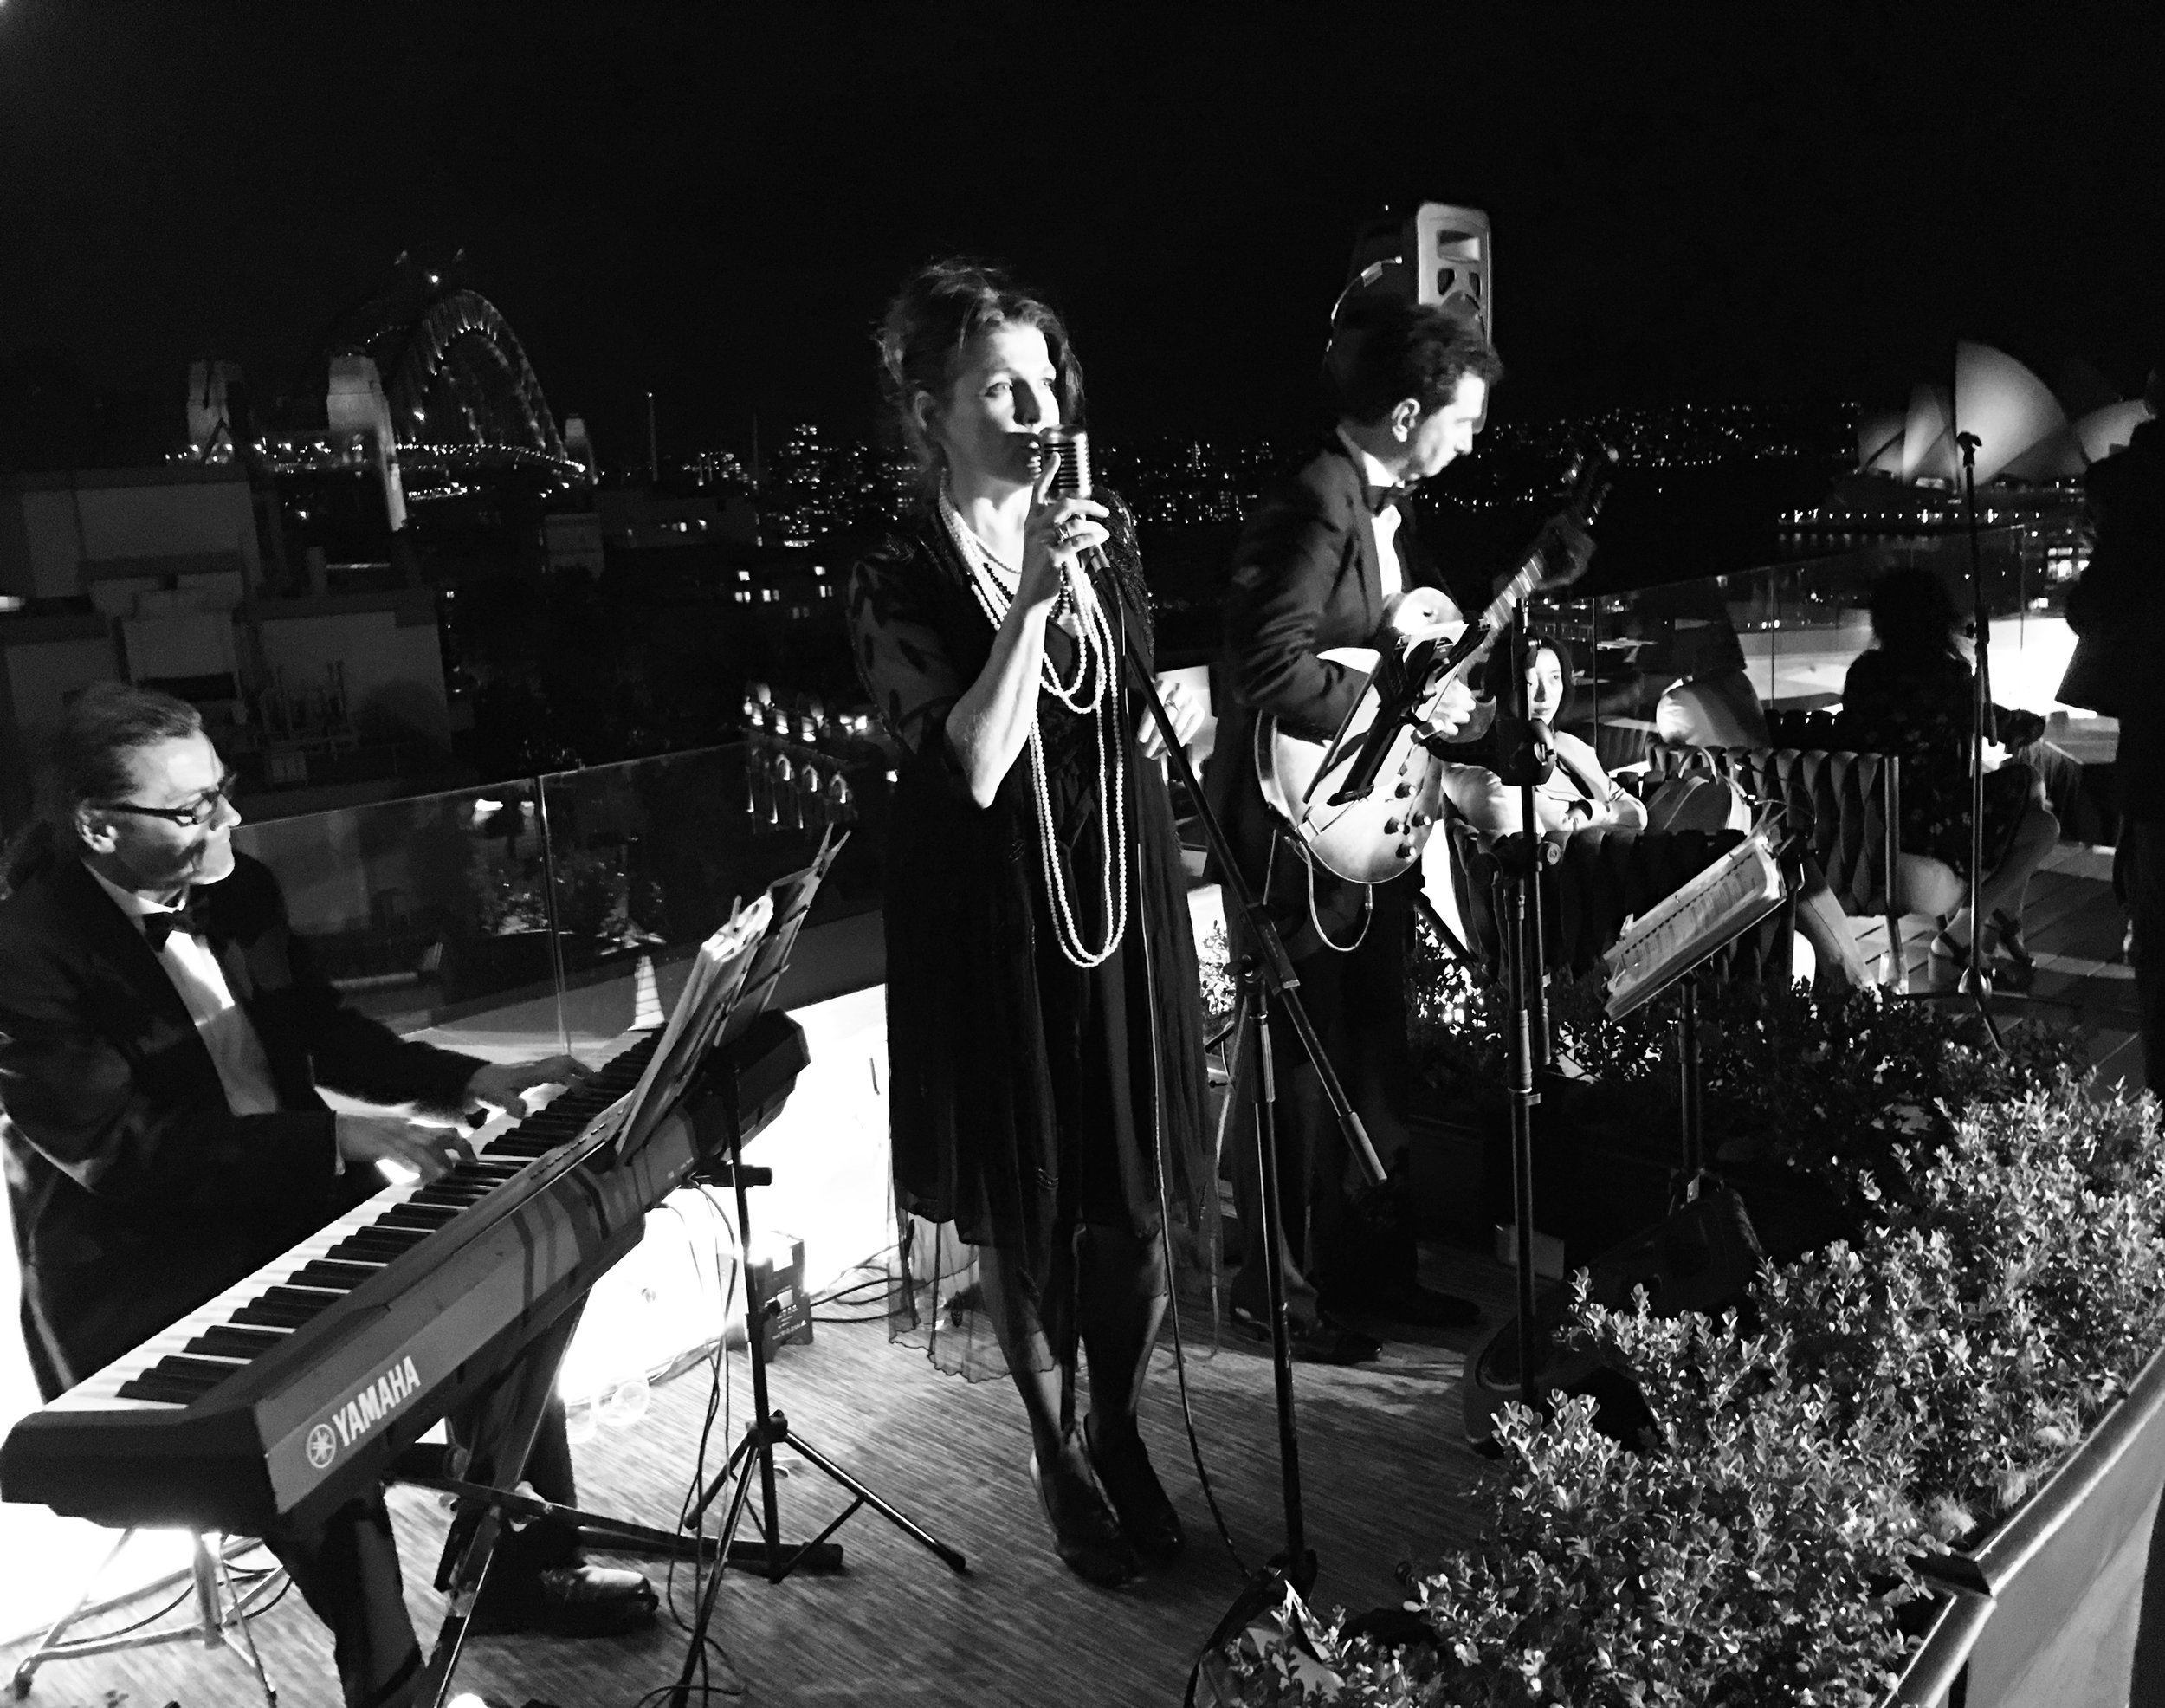 Great fun to play a 1920s themed event on a rooftop at the rocks in Sydney. so many great songs from that era - think great gatsby - and so many beads!